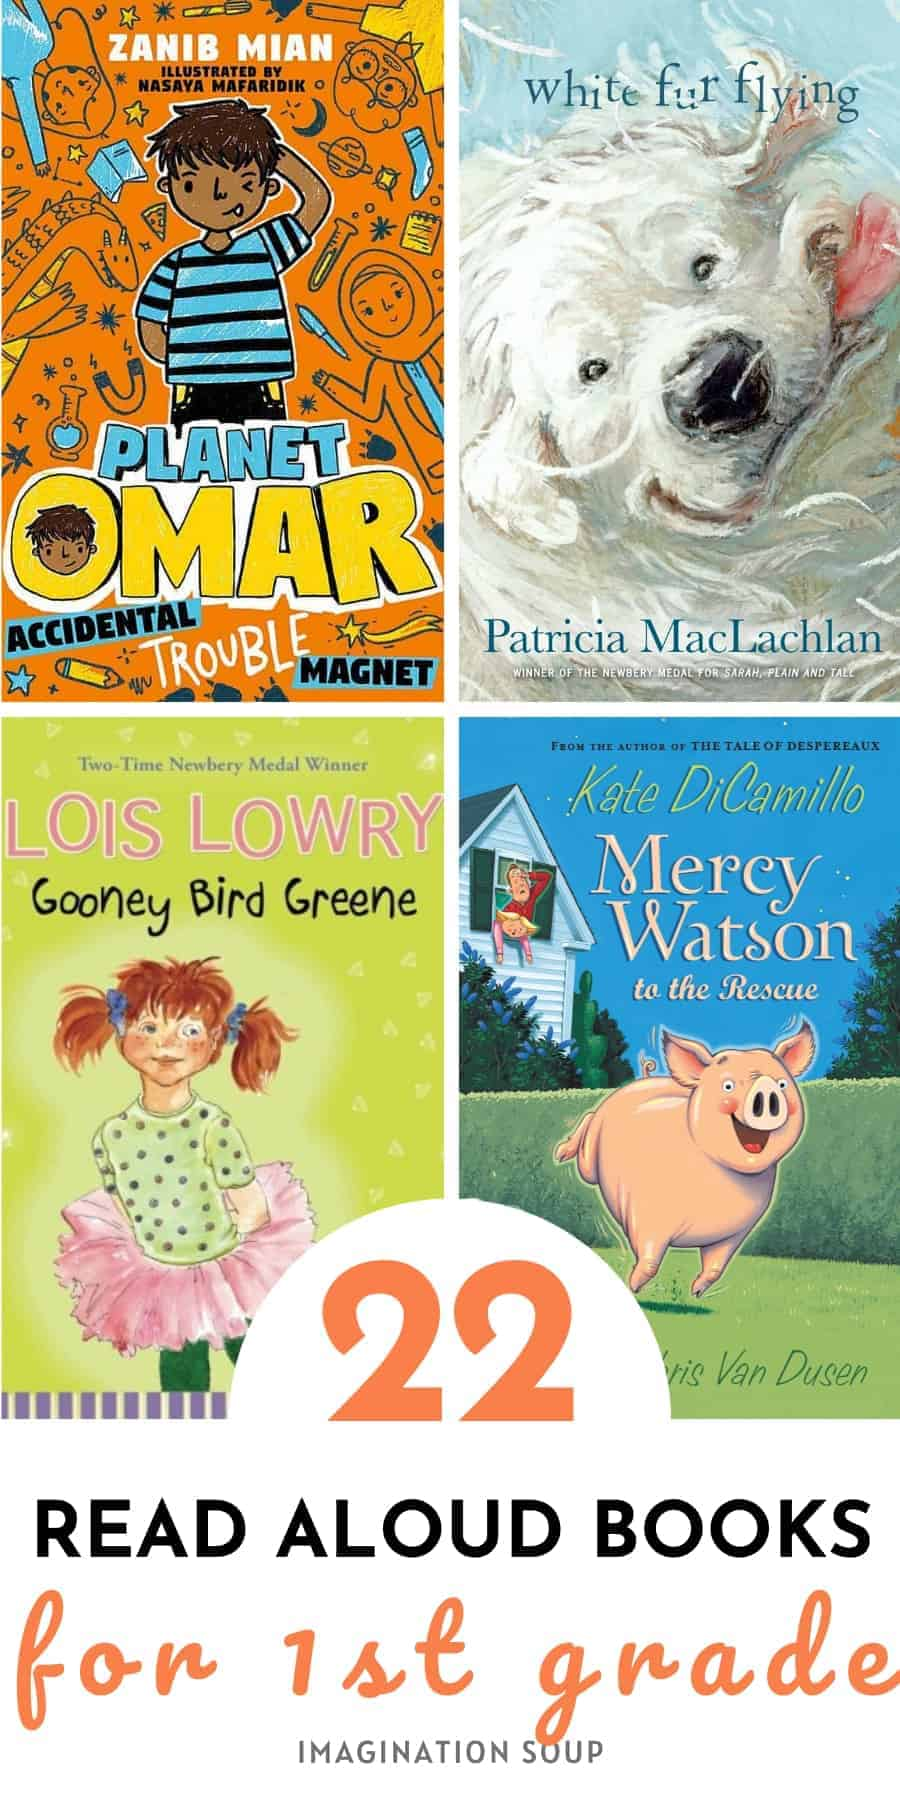 22 read aloud books for 1st grade